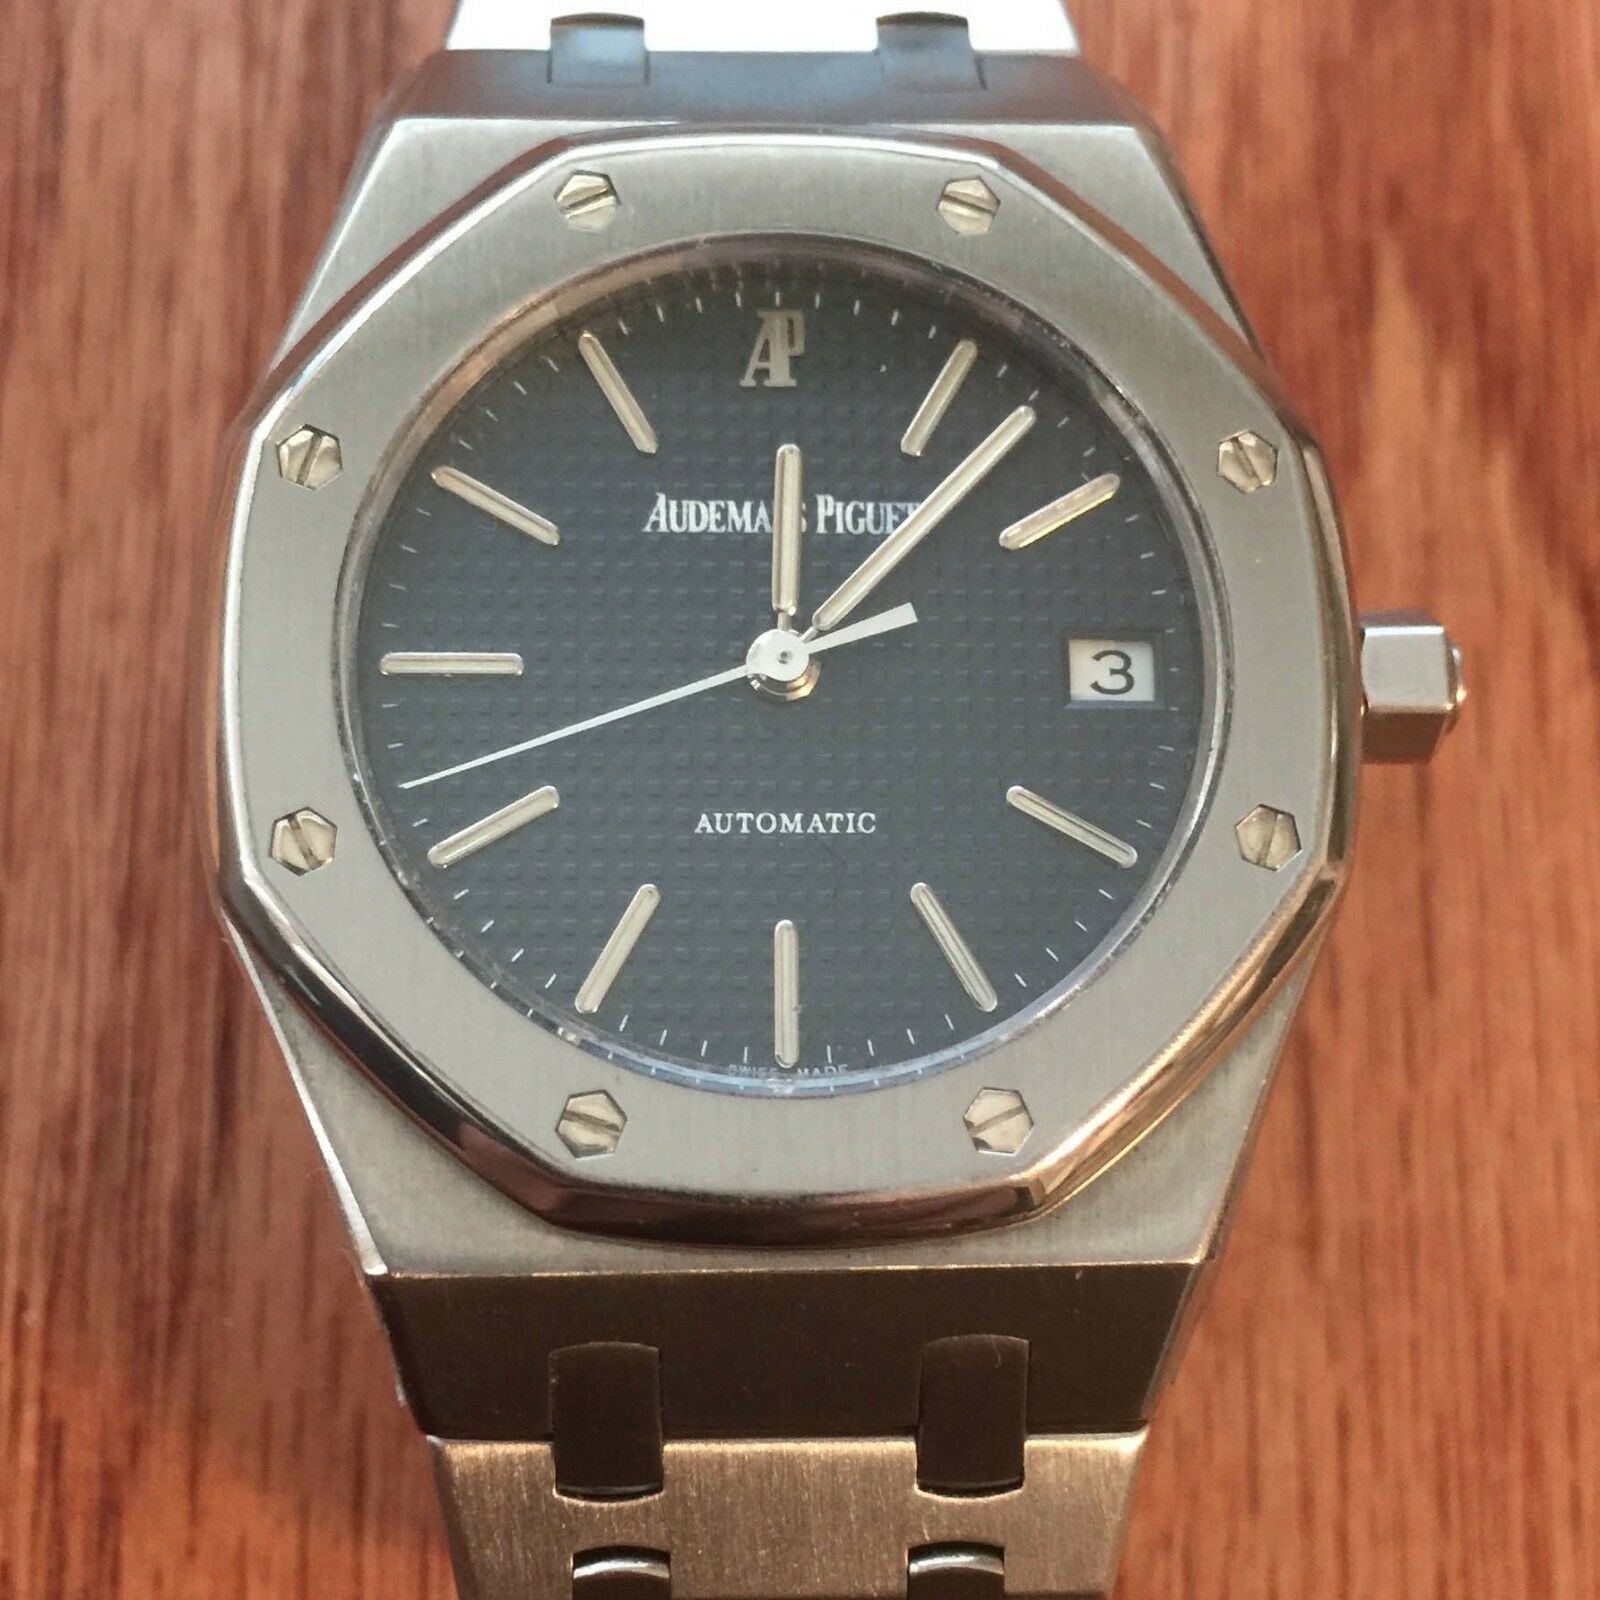 $45.00 - Audemars Piguet Zagg Protector anti-scratch, Crystal, Bezel and Sides set of 2